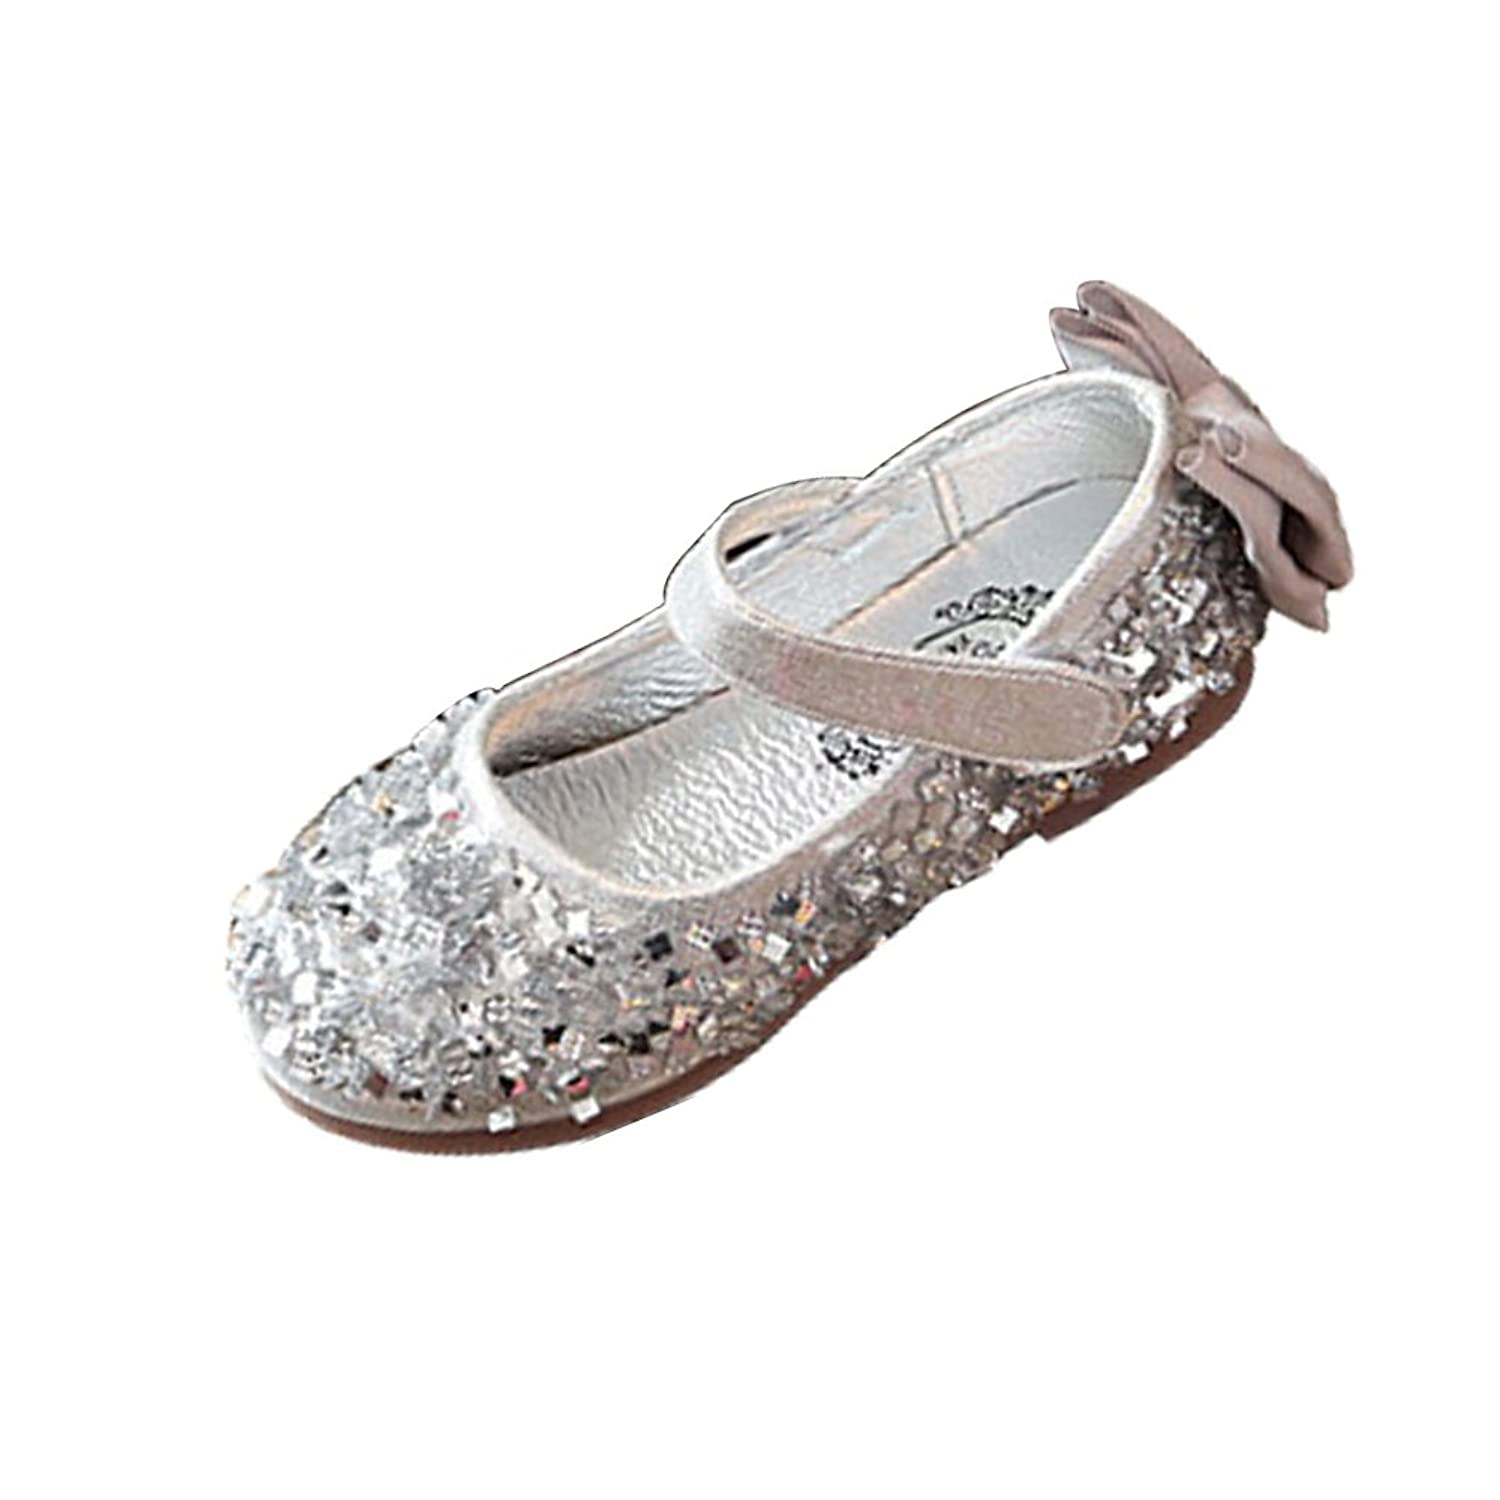 303b098370b Amur Leopard Kids Girls Mary Jane Shoes Dance Sequins Flower Wedding  Princess Shoes(Toddler